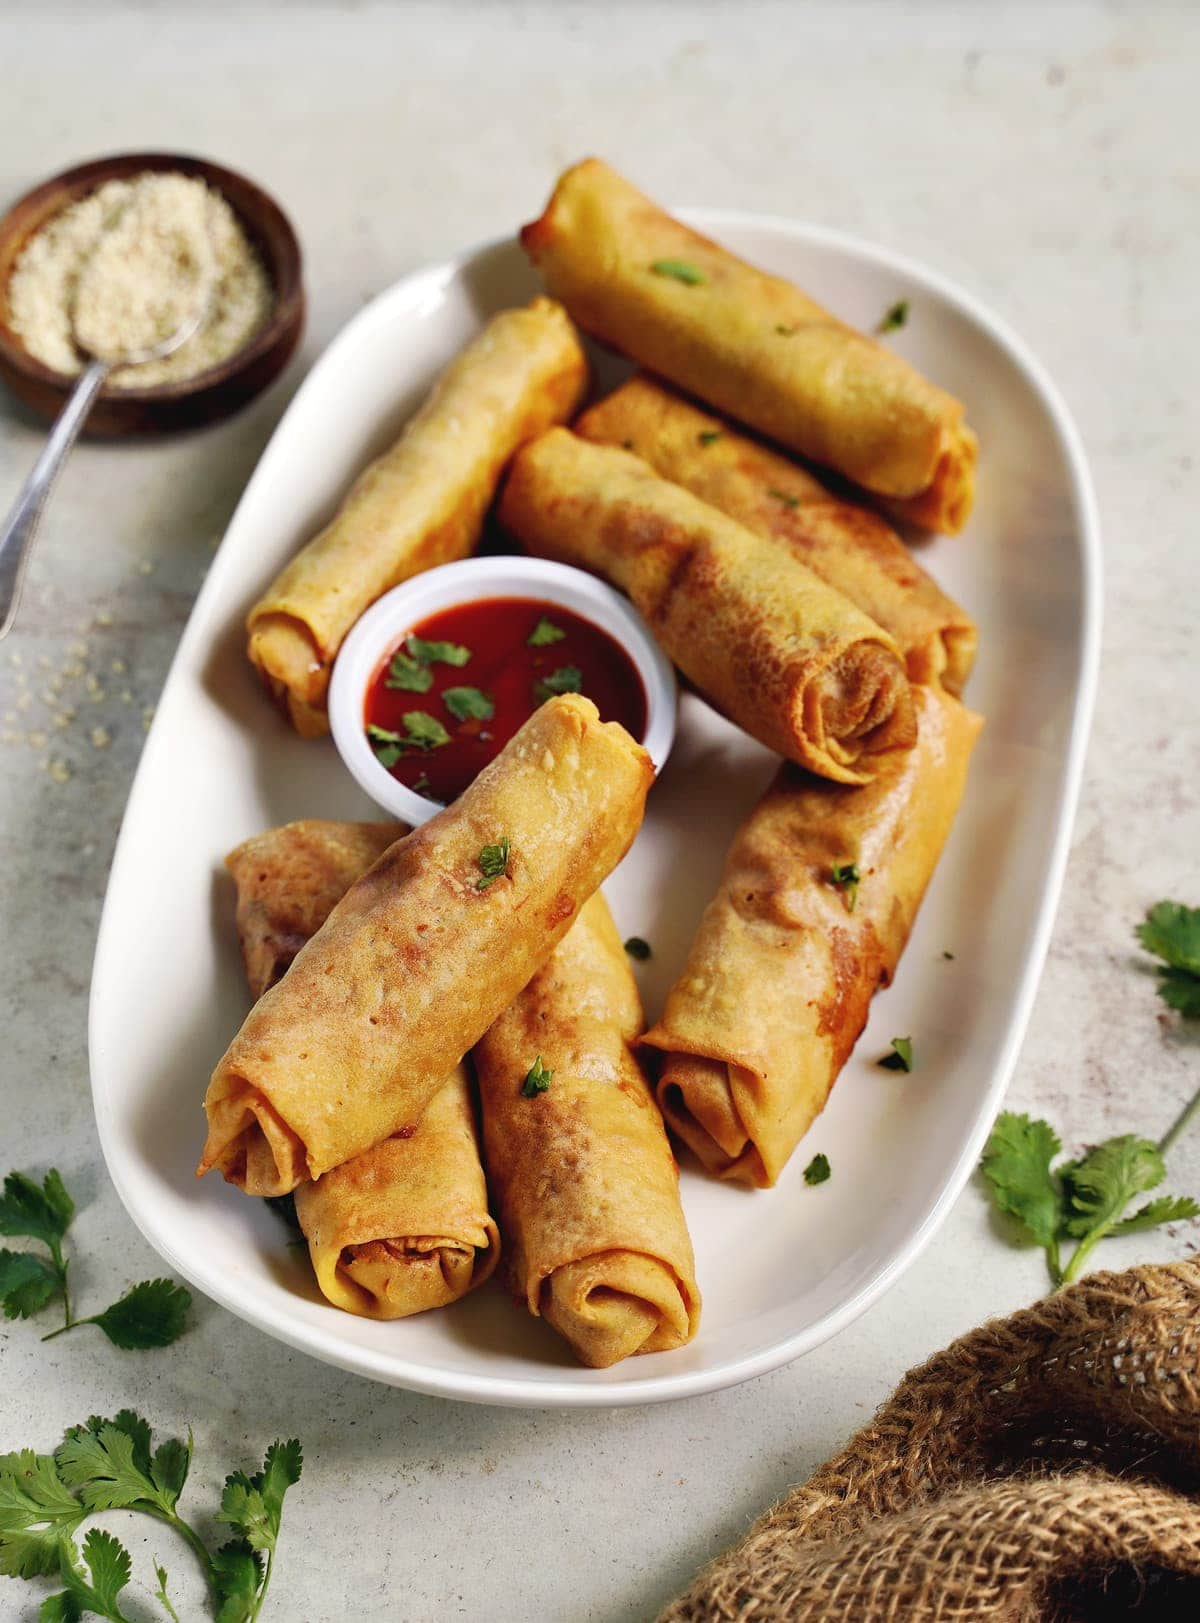 homemade crispy vegan spring rolls with gluten-free wrappers on white plate